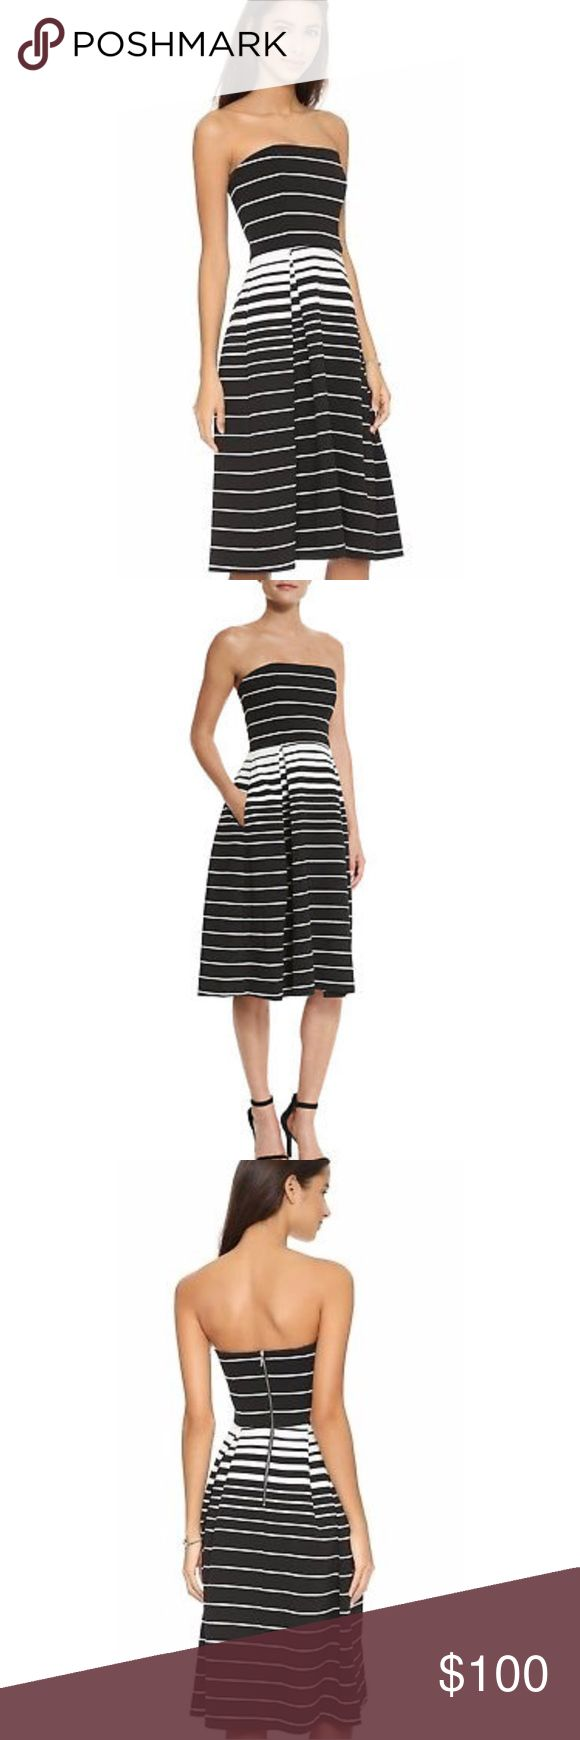 """Strapless black and white dress N NICHOLAS Black White Corsica Striped Strapless Ball Dress In great condition, only worn once Approximately 41"""" in length Bloomingdale's Dresses Midi"""